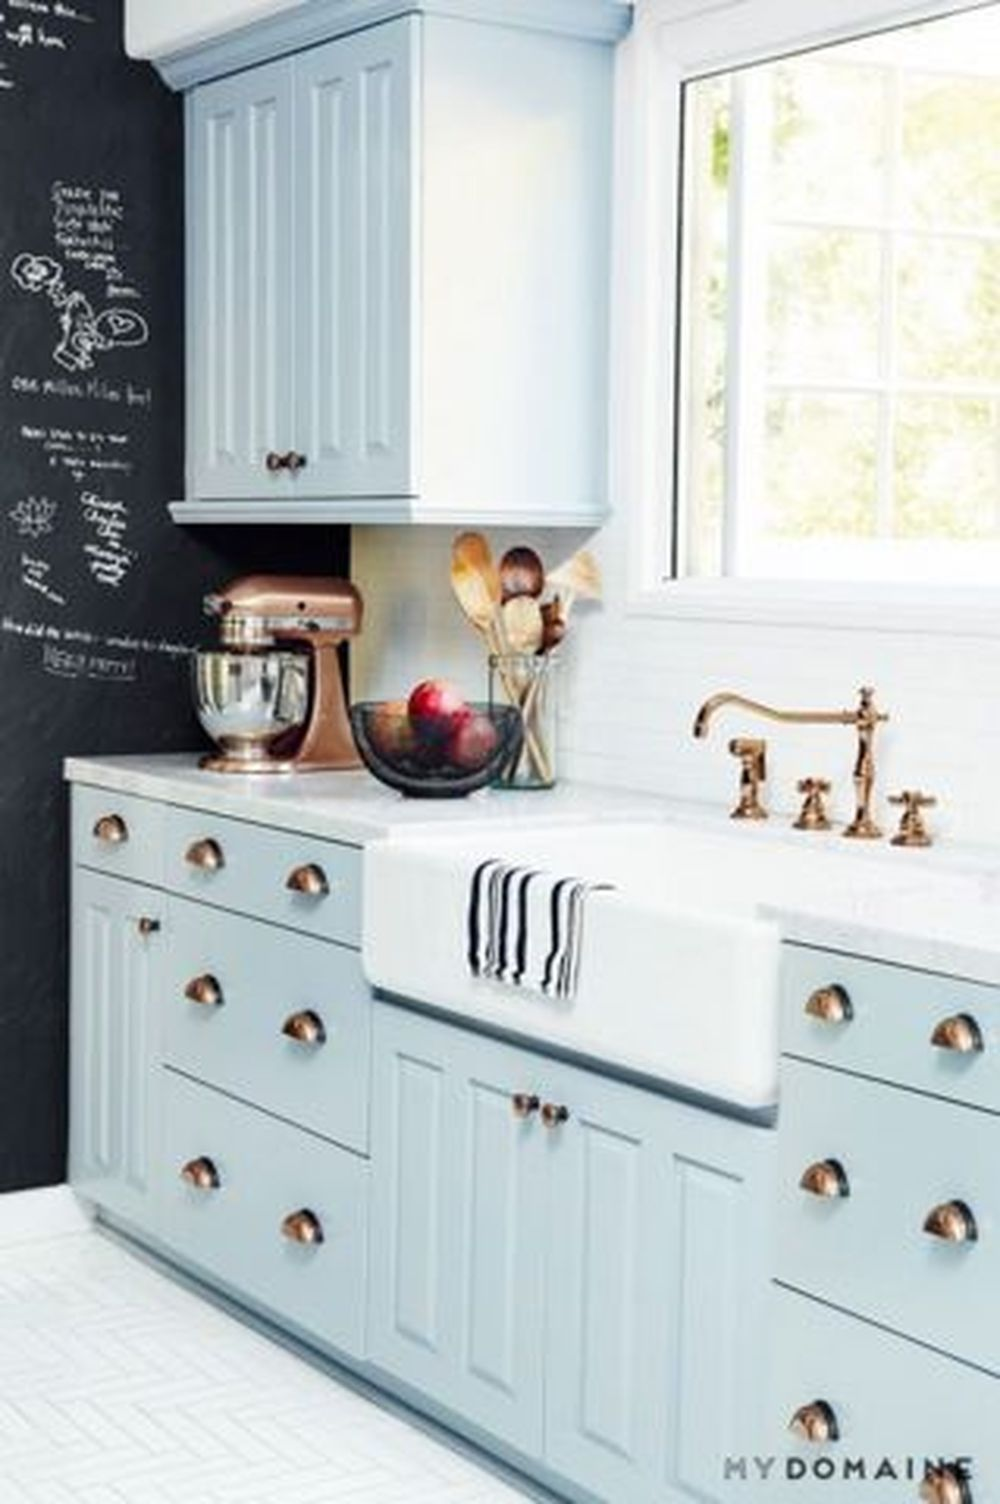 43 The Best Paint Colors for Kitchen Your Cabinets | Pinterest ...